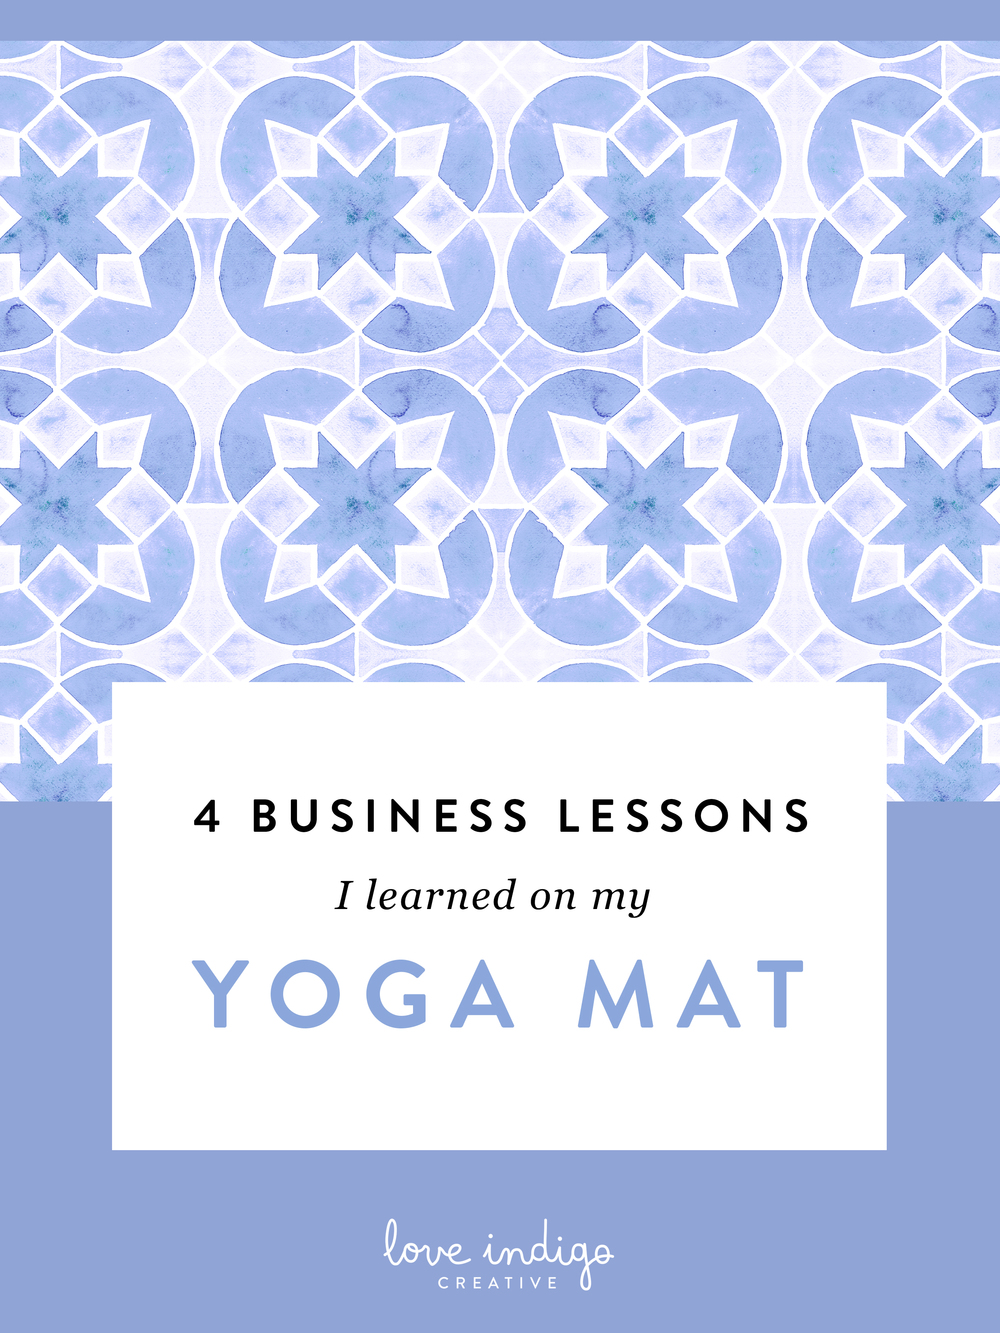 4 Business Lessons I Learned On My Yoga Mat